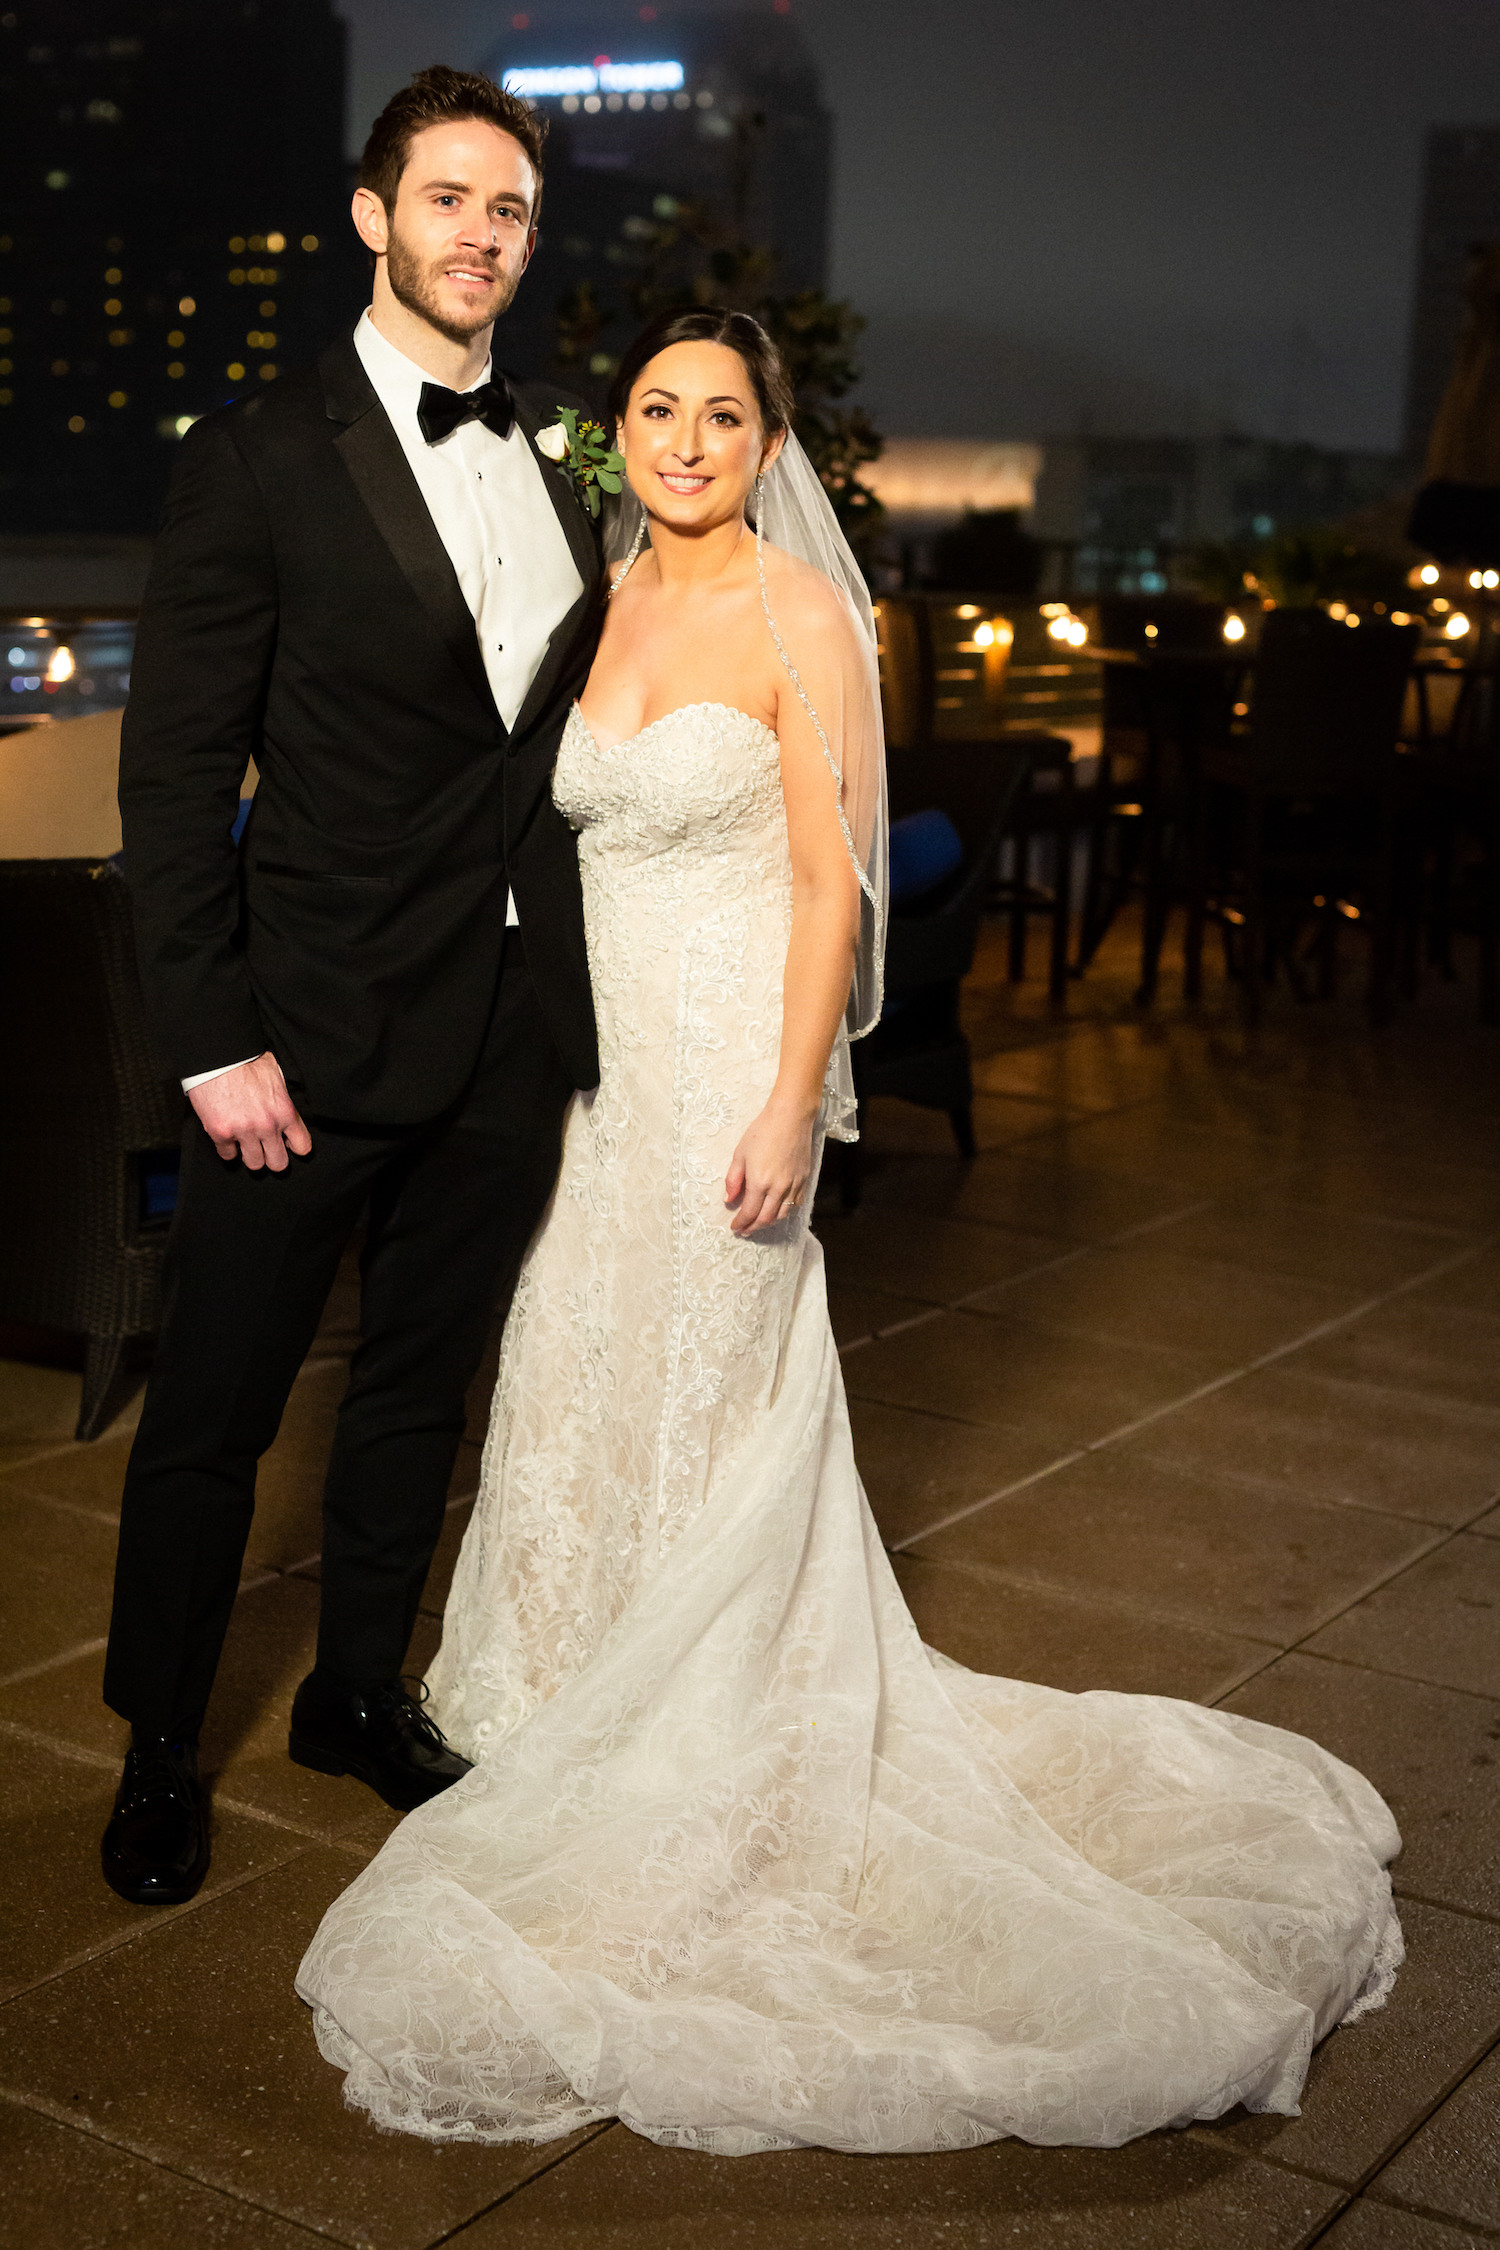 Brett and Olivia star in Season 11 of Married at First Sight